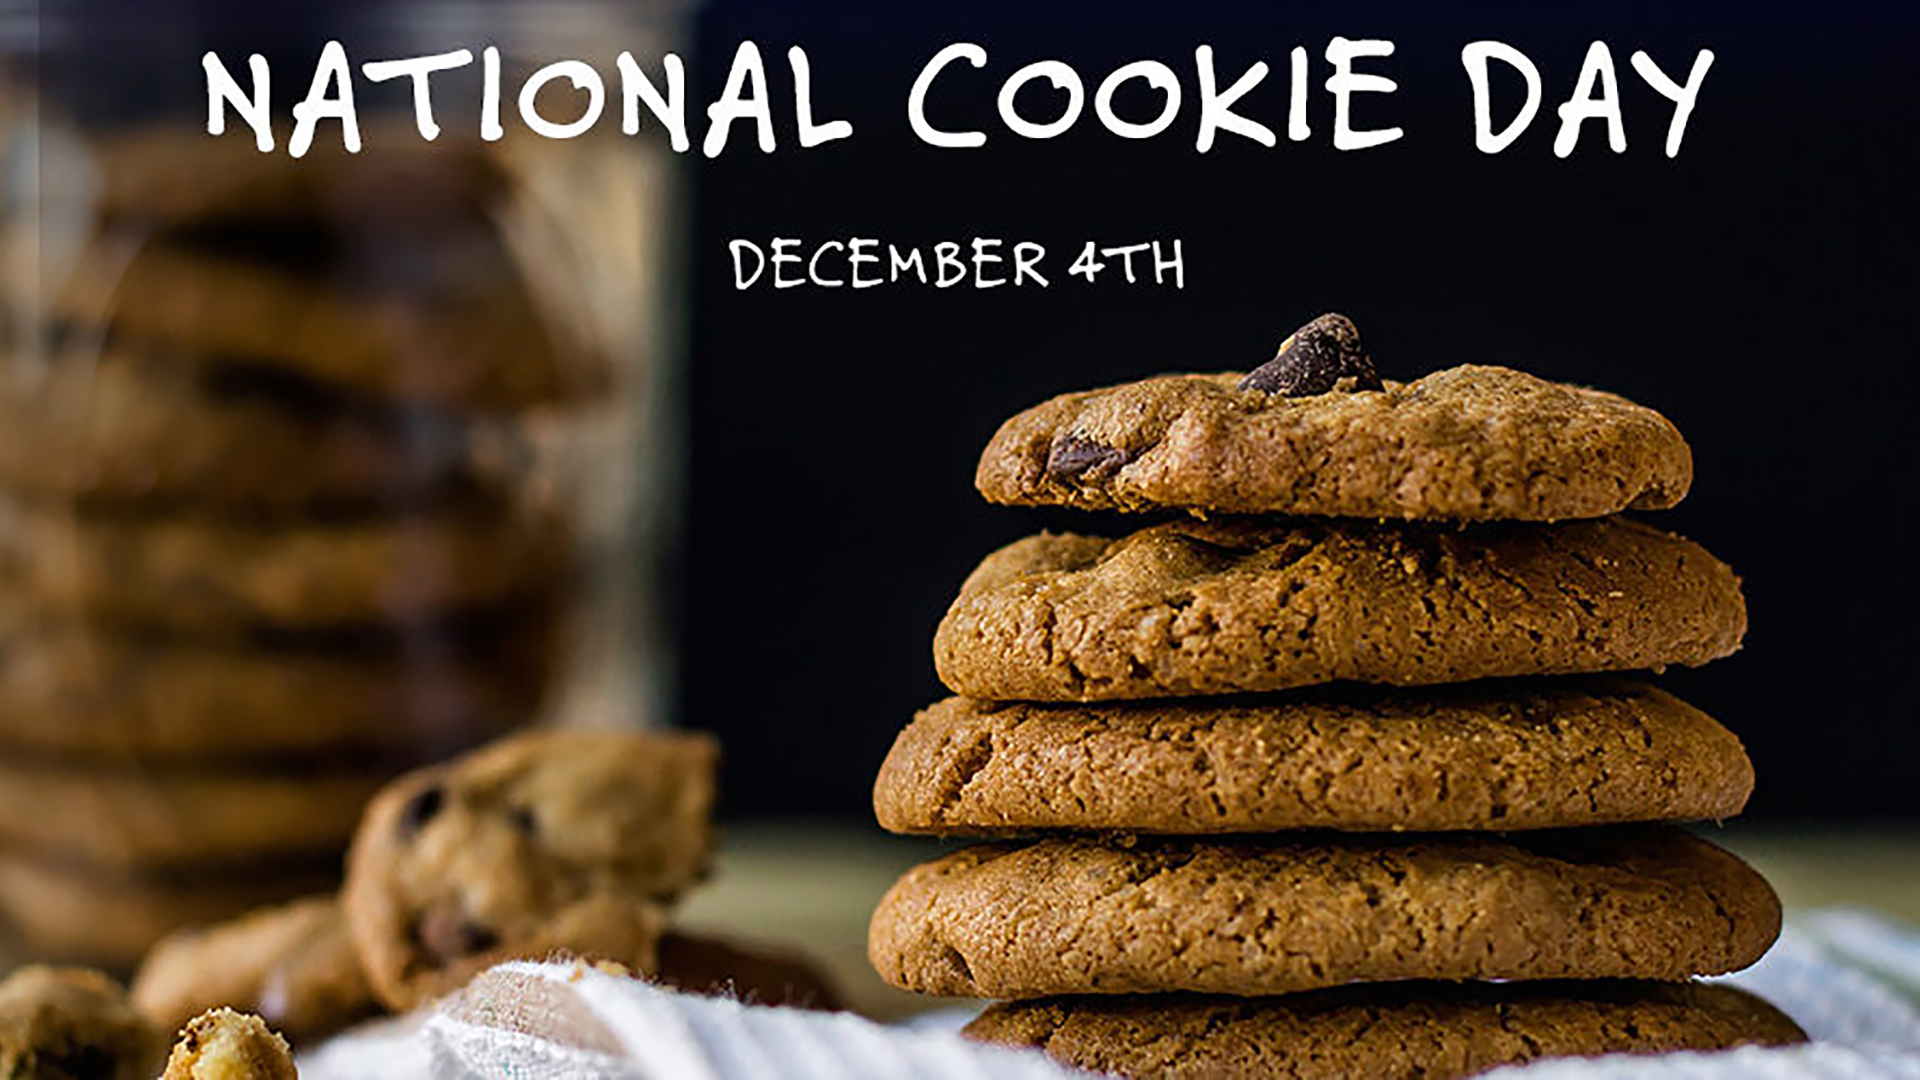 DEC 4 National Cookie Day Digital Signage Graphic